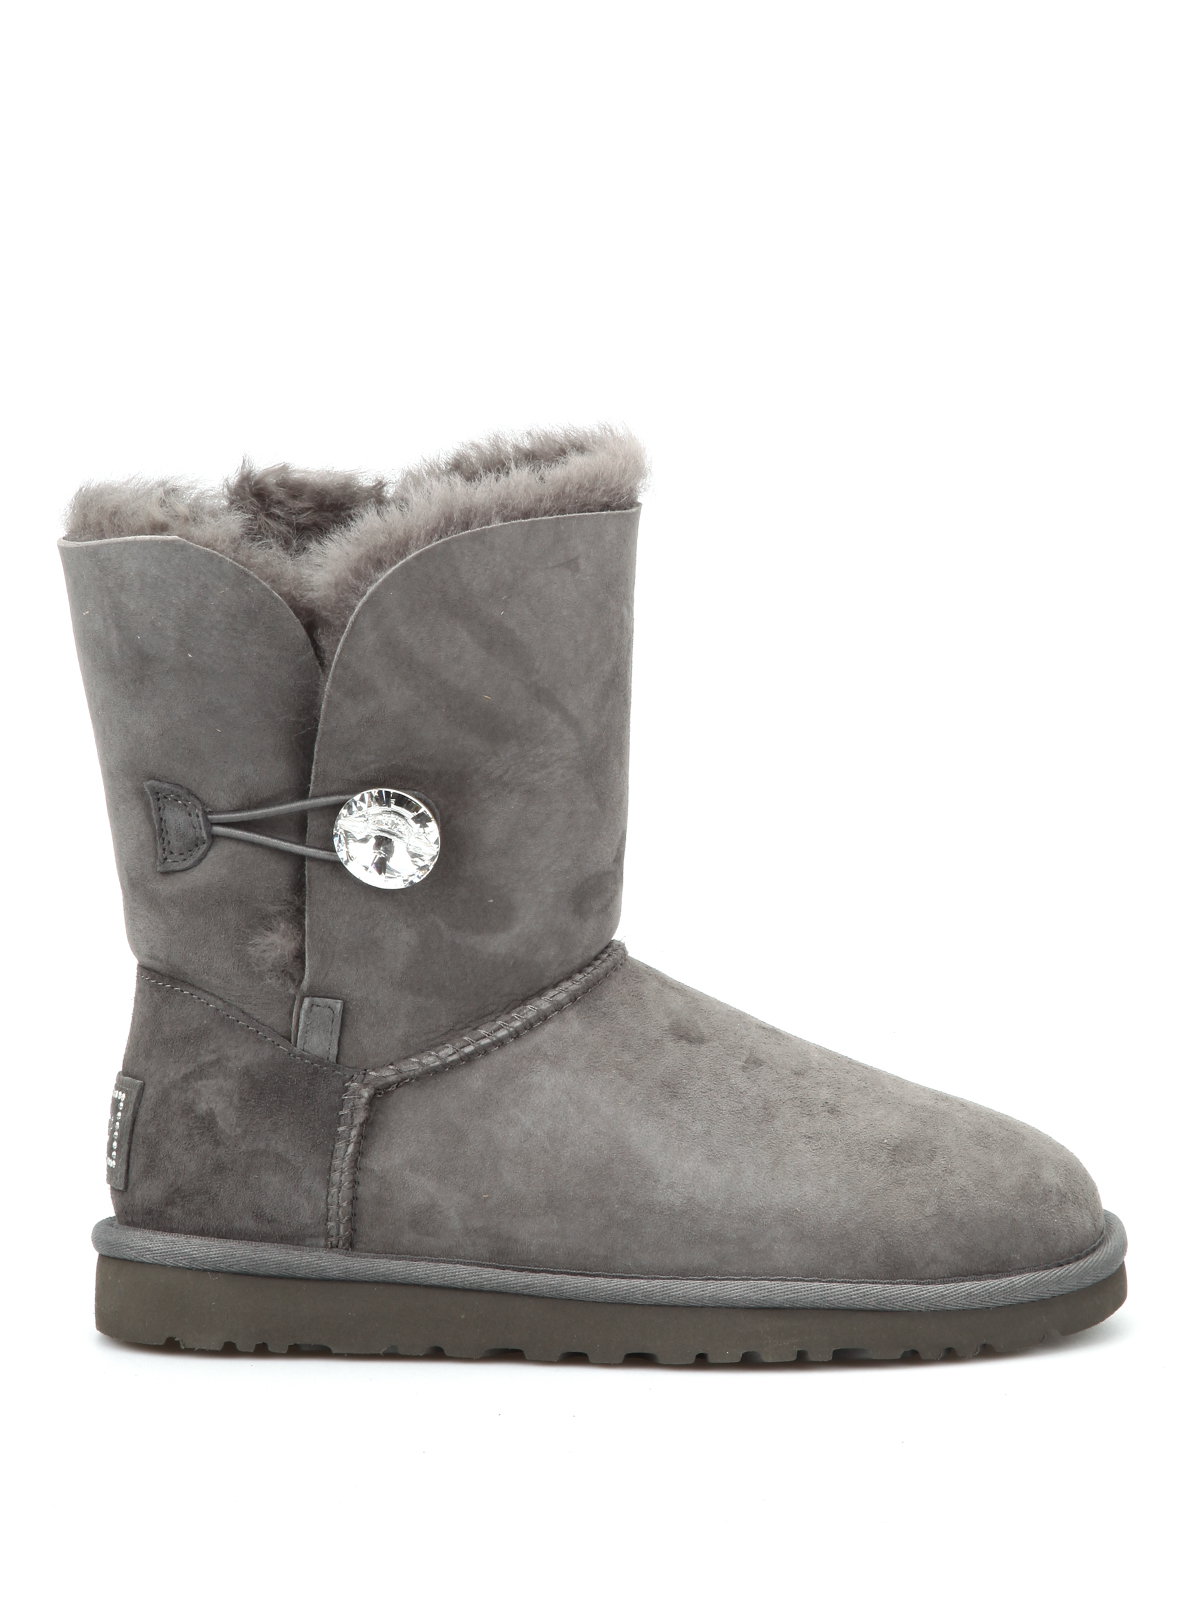 Shopping Tips for UGG: 1. Following CouponCabin links to the UGG online shop takes you to an exclusive selection of UGG footwear styles! 2. A complimentary one-year warranty that covers damage within the first year comes with every pair of shoes and boots. 3. Before you hit submit, look for a .